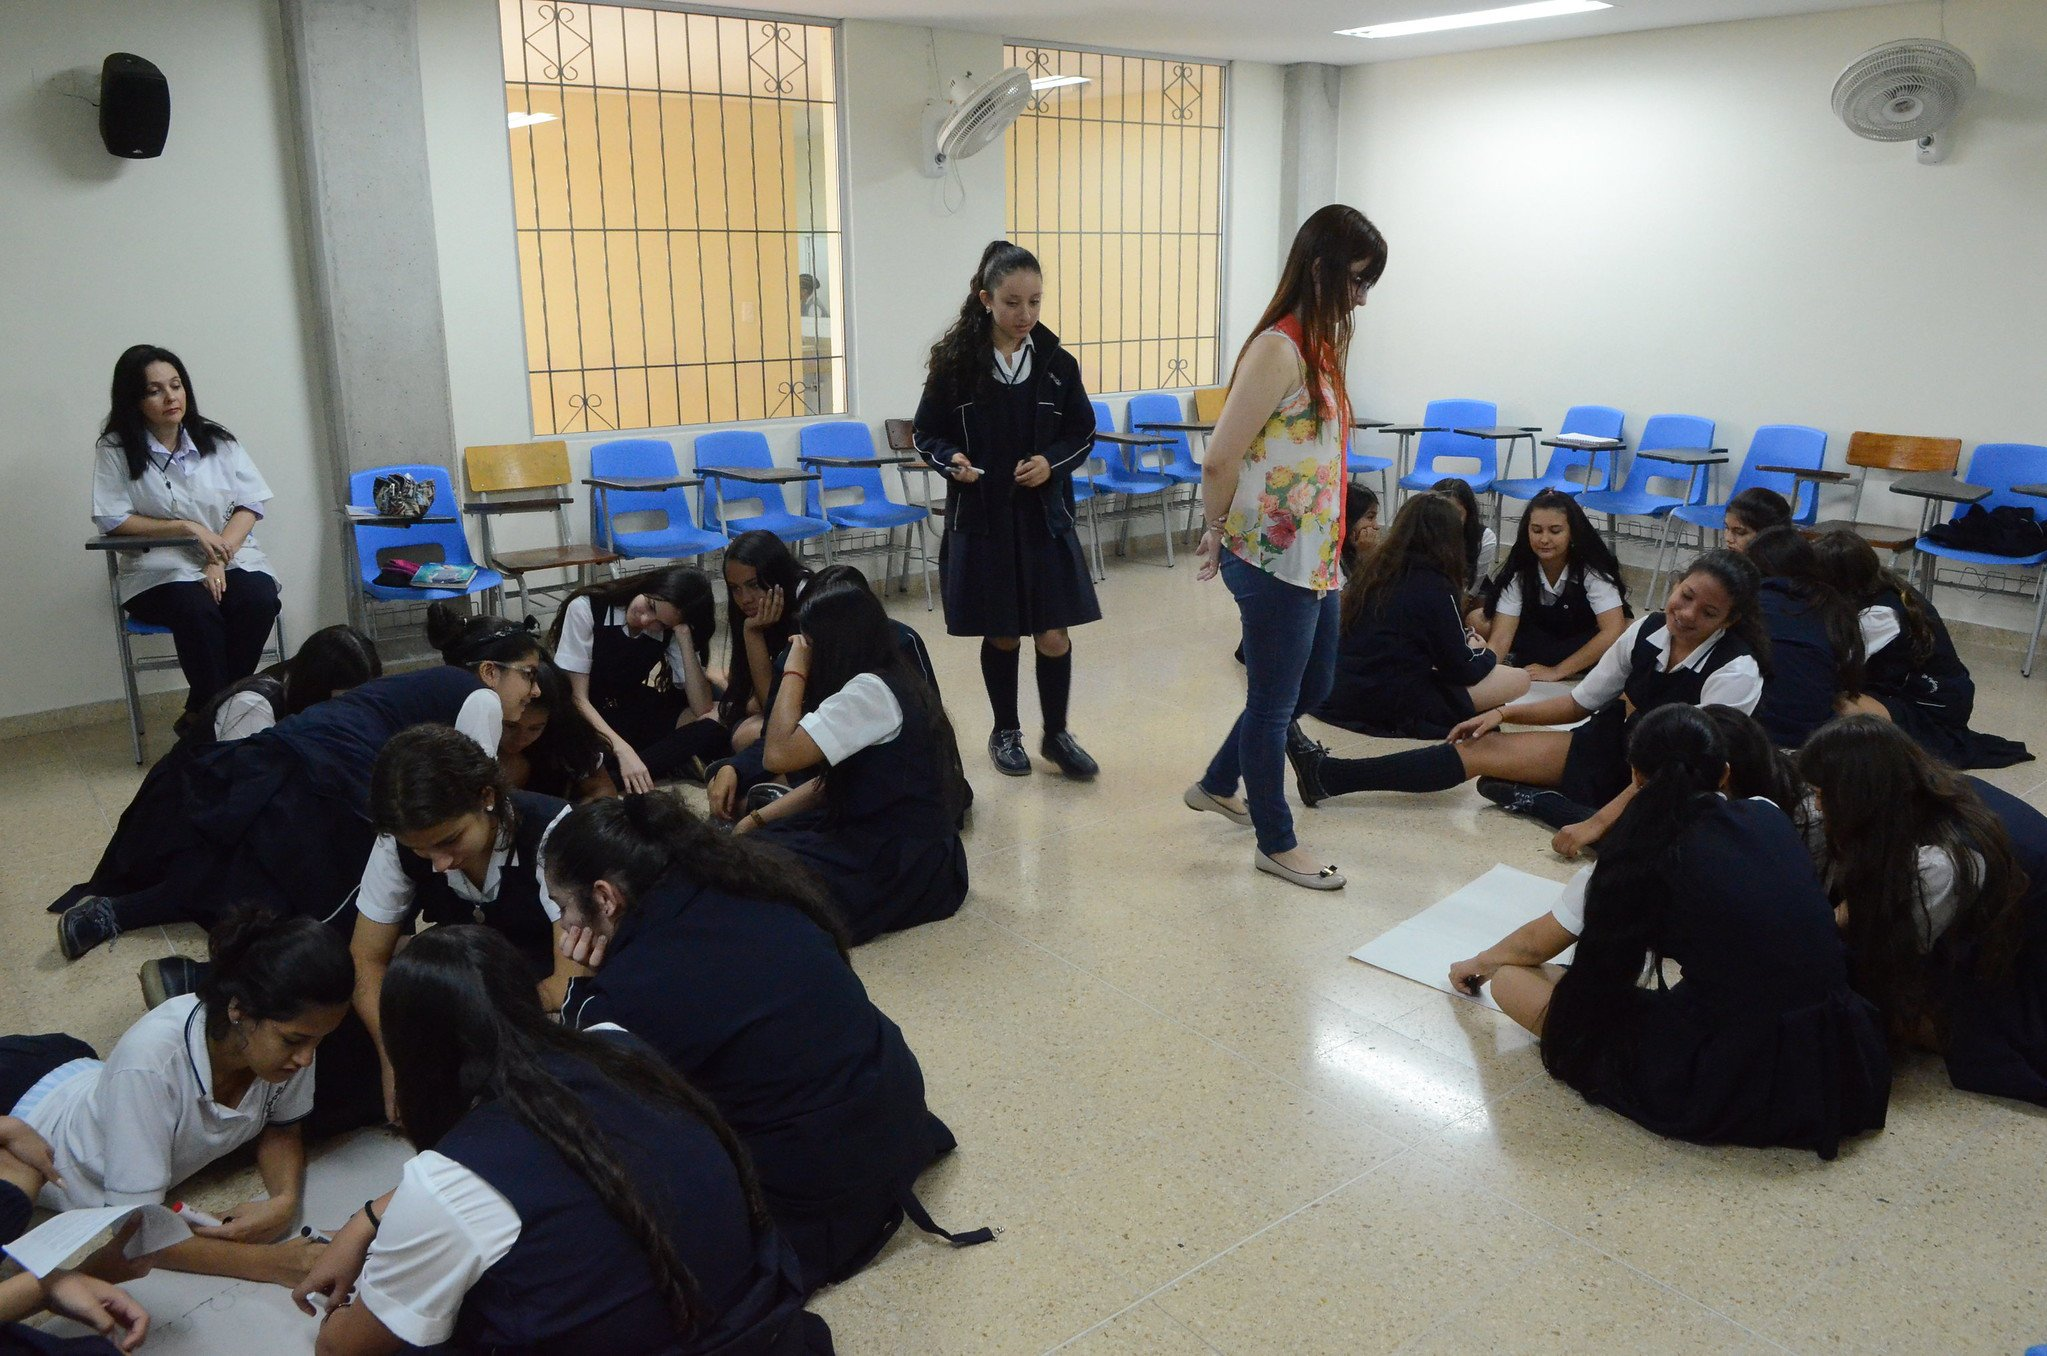 At La Presentation College in commune 12 La América, approximately 150 students learn about caring for life on the road.